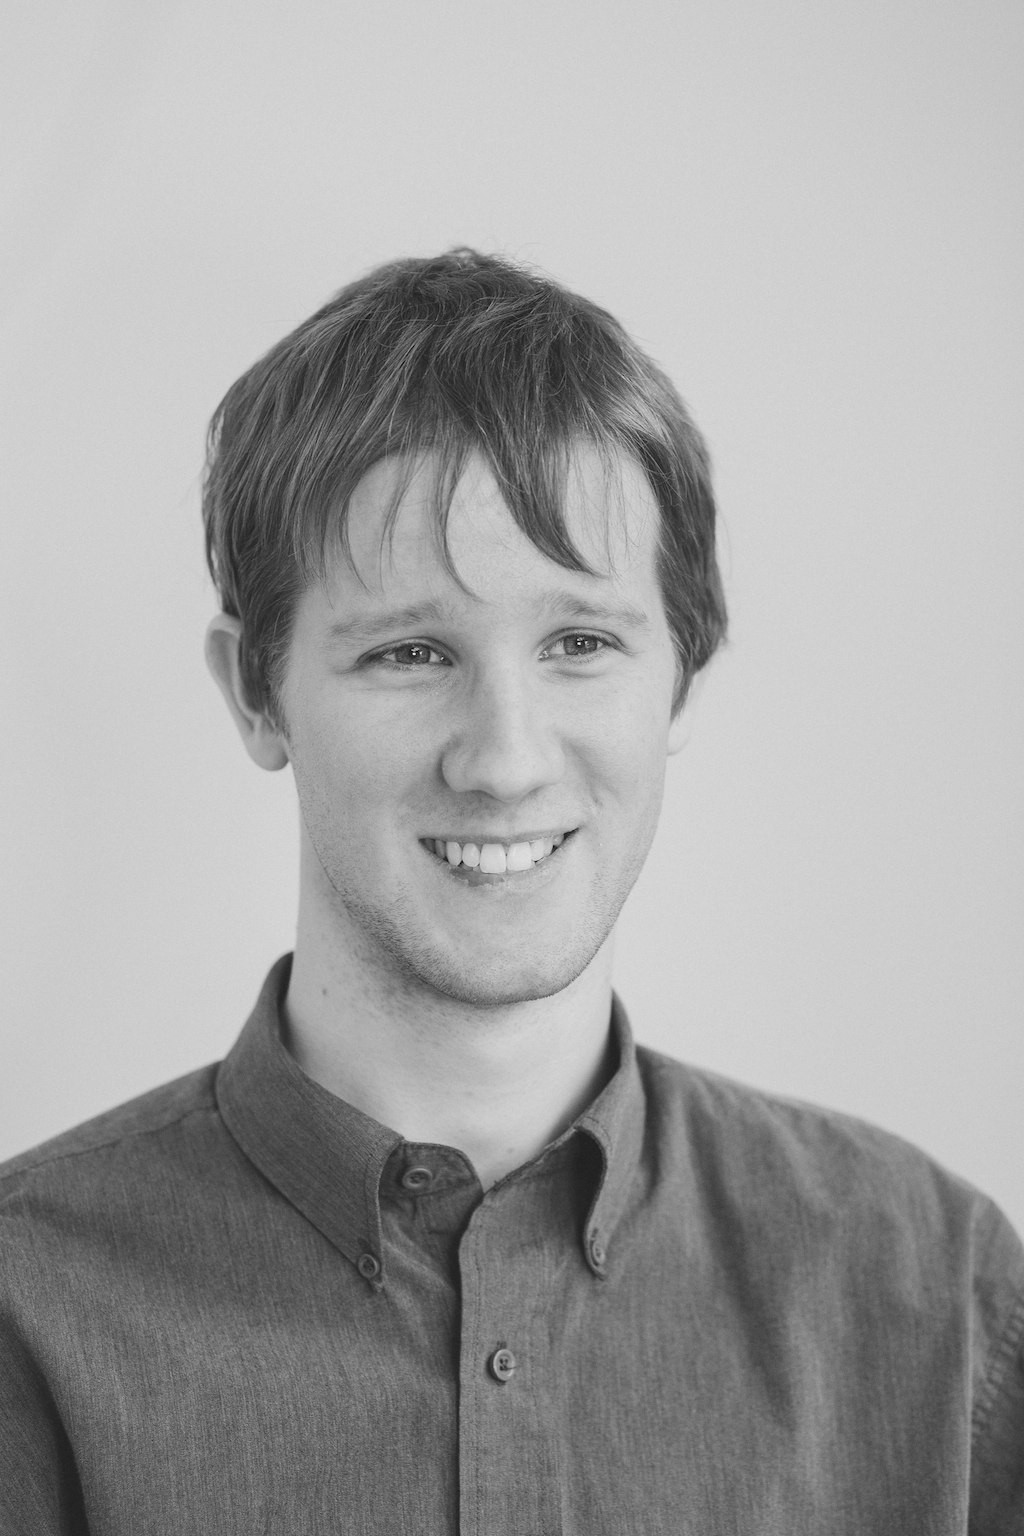 Meet Our Team Recap - Jordan - iOS Developer